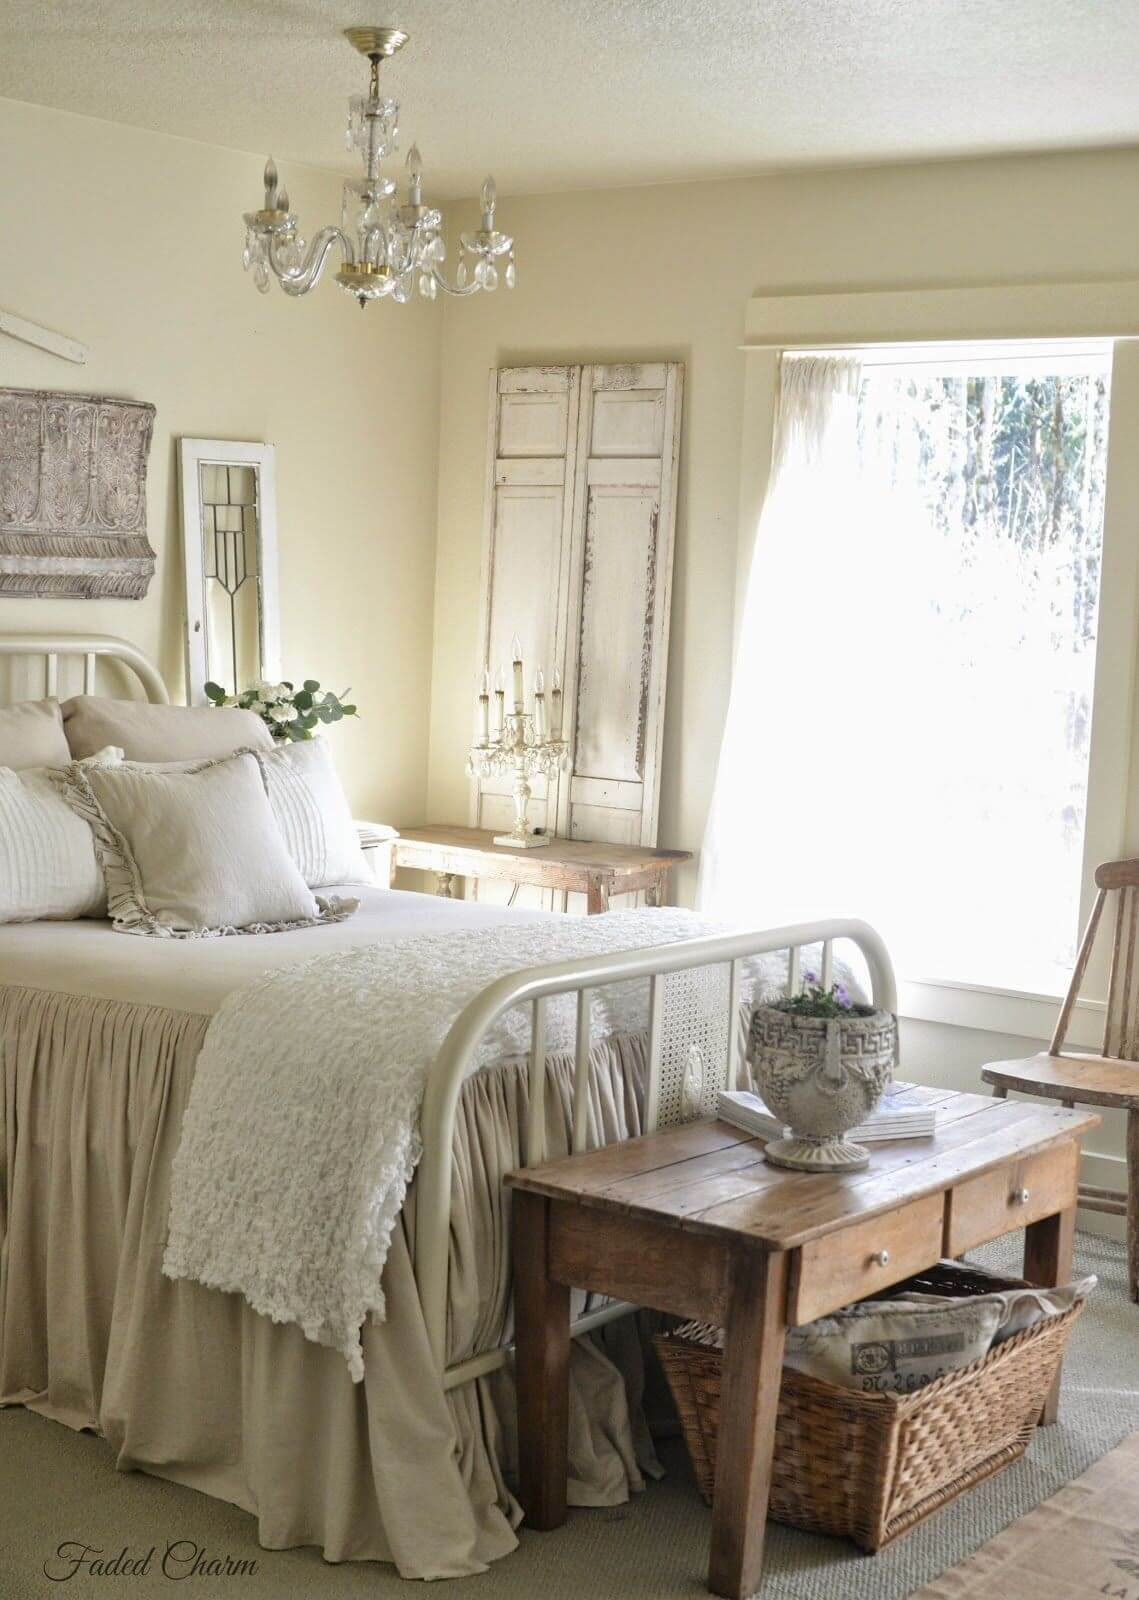 Beige and White Relaxing Bedroom